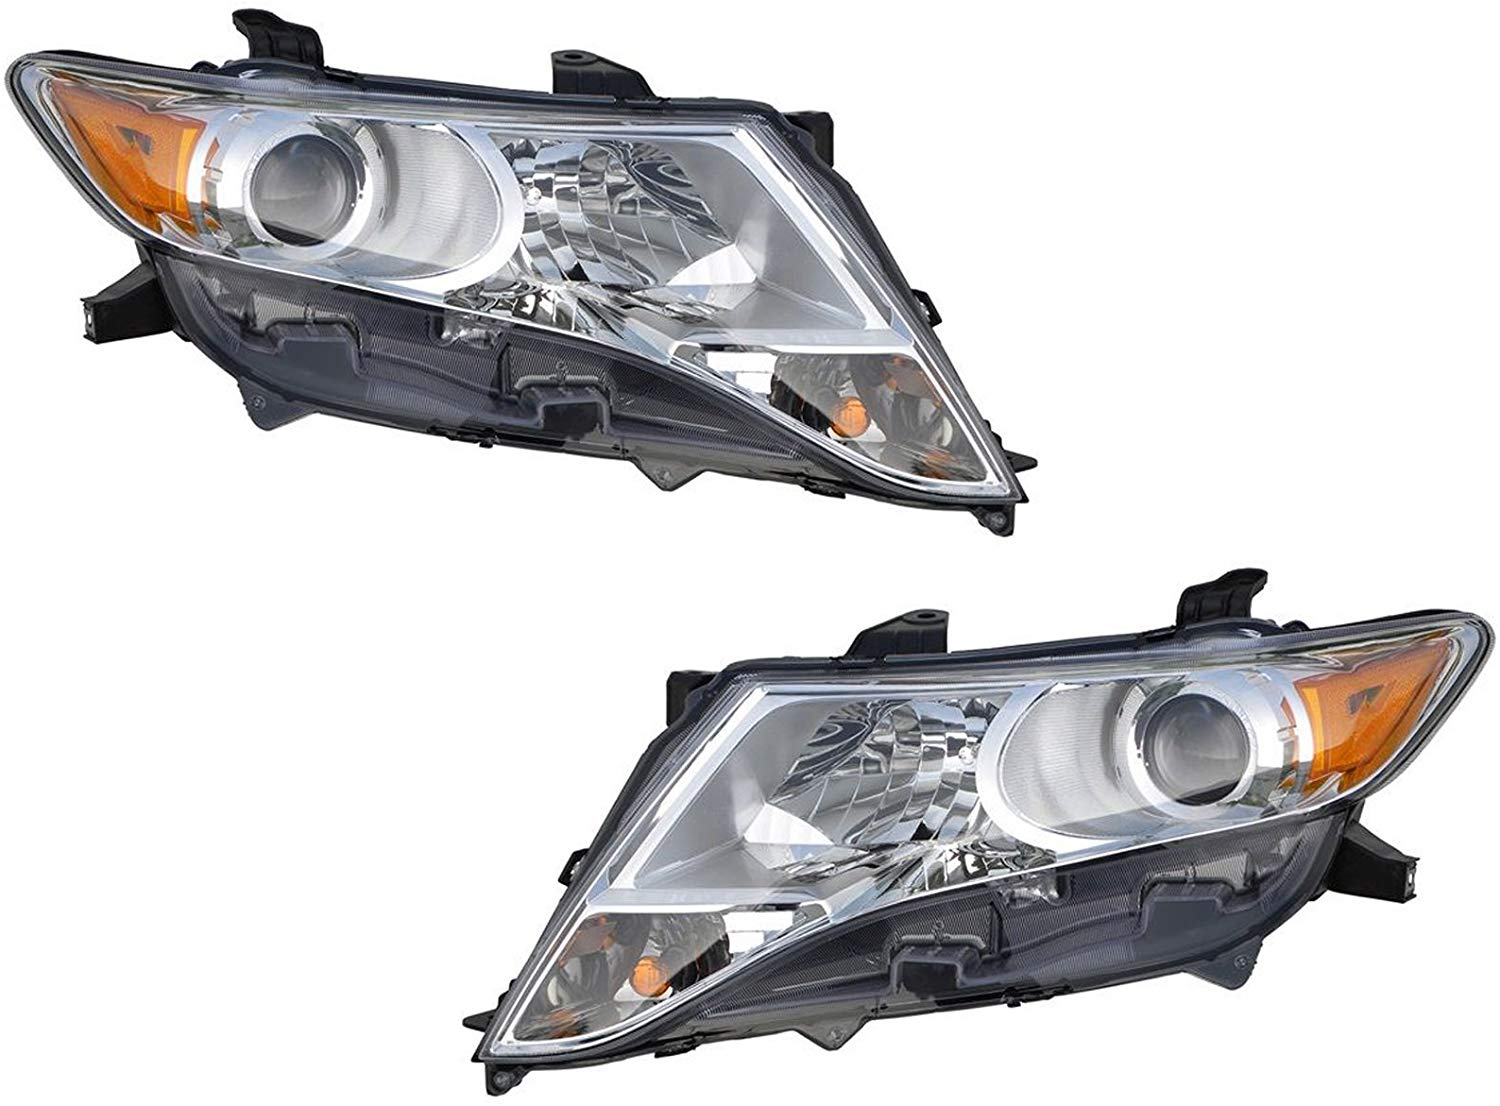 Tokunbo Headlights for Toyota Venza 2014